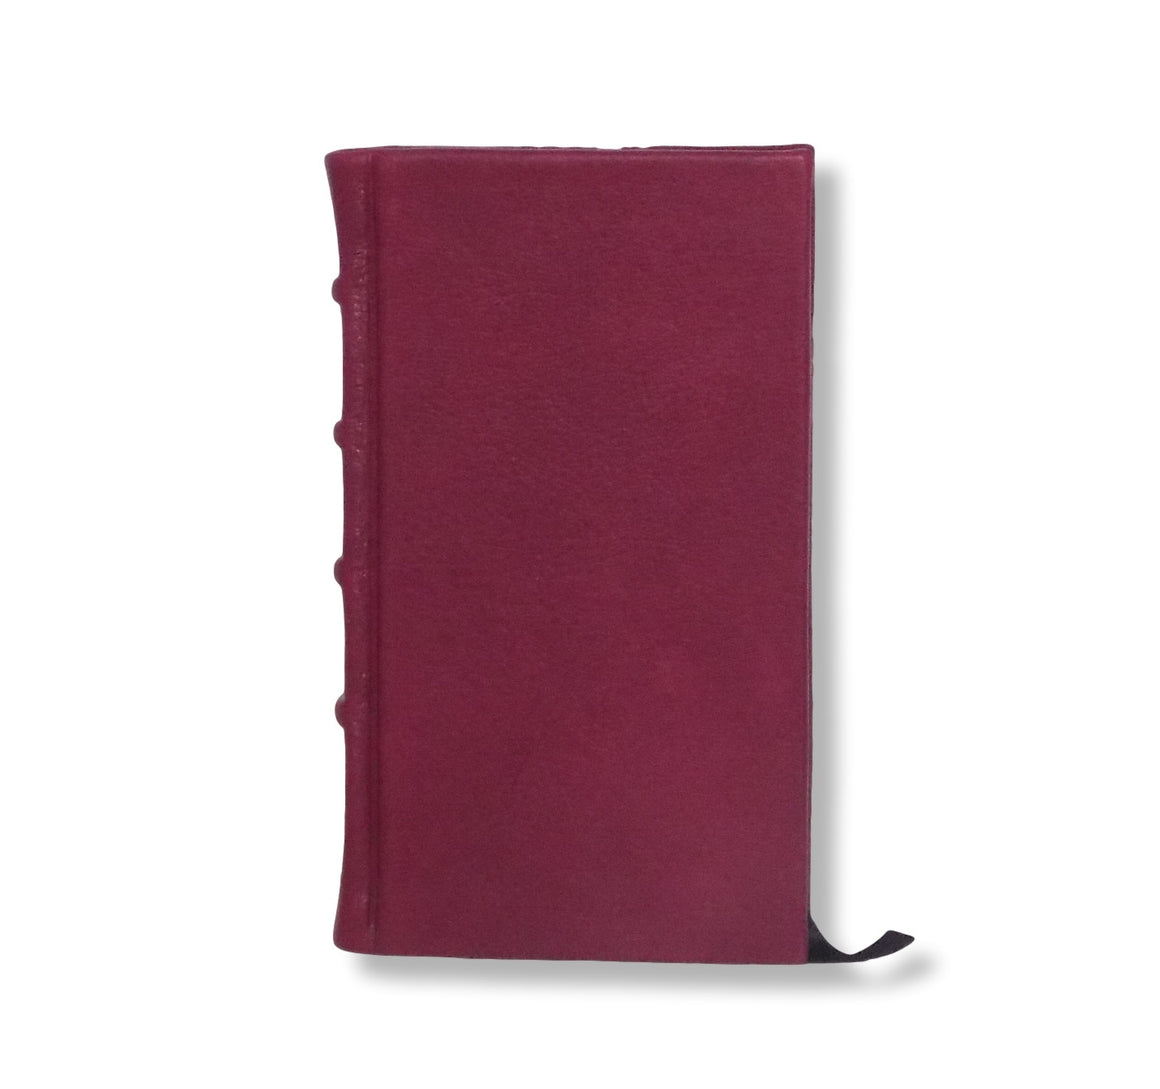 Full Crimson Leather Slimline Journal